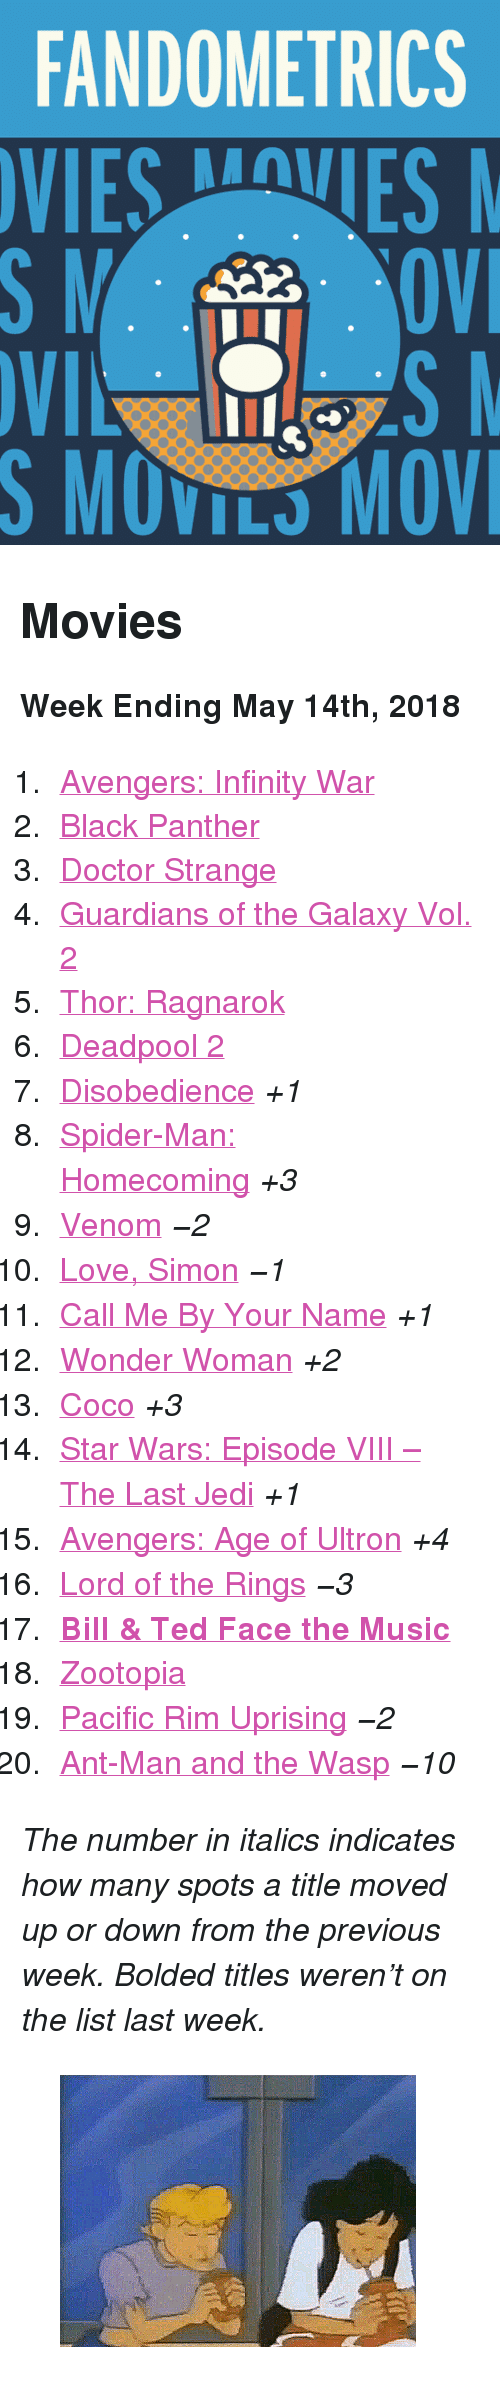 "Avengers Age of Ultron, CoCo, and Doctor: FANDOMETRICS  SMOVILS MOV <h2>Movies</h2><p><b>Week Ending May 14th, 2018</b></p><ol><li><a href=""http://www.tumblr.com/search/infinity%20war"">Avengers: Infinity War</a></li>  <li><a href=""http://www.tumblr.com/search/black%20panther"">Black Panther</a></li>  <li><a href=""http://www.tumblr.com/search/doctor%20strange"">Doctor Strange</a></li>  <li><a href=""http://www.tumblr.com/search/guardians%20of%20the%20galaxy"">Guardians of the Galaxy Vol. 2</a></li>  <li><a href=""http://www.tumblr.com/search/thor%20ragnarok"">Thor: Ragnarok</a></li>  <li><a href=""http://www.tumblr.com/search/deadpool"">Deadpool 2</a></li>  <li><a href=""http://www.tumblr.com/search/disobedience"">Disobedience</a> <i>+1</i></li>  <li><a href=""http://www.tumblr.com/search/spiderman%20homecoming"">Spider-Man: Homecoming</a> <i>+3</i></li>  <li><a href=""http://www.tumblr.com/search/venom"">Venom</a> <i><i>−2</i></i></li>  <li><a href=""http://www.tumblr.com/search/love%20simon"">Love, Simon</a> <i><i>−1</i></i></li>  <li><a href=""http://www.tumblr.com/search/call%20me%20by%20your%20name"">Call Me By Your Name</a> <i>+1</i></li>  <li><a href=""http://www.tumblr.com/search/wonder%20woman"">Wonder Woman</a> <i>+2</i></li>  <li><a href=""http://www.tumblr.com/search/coco"">Coco</a> <i>+3</i></li>  <li><a href=""http://www.tumblr.com/search/the%20last%20jedi"">Star Wars: Episode VIII – The Last Jedi</a> <i>+1</i></li>  <li><a href=""http://www.tumblr.com/search/age%20of%20ultron"">Avengers: Age of Ultron</a> <i>+4</i></li>  <li><a href=""http://www.tumblr.com/search/lotr"">Lord of the Rings</a> <i><i>−3</i></i></li>  <li><a href=""http://www.tumblr.com/search/bill%20and%20ted%20face%20the%20music""><b>Bill &amp; Ted Face the Music</b></a></li>  <li><a href=""http://www.tumblr.com/search/zootopia"">Zootopia</a></li>  <li><a href=""http://www.tumblr.com/search/pacific%20rim"">Pacific Rim Uprising</a> <i><i>−2</i></i></li>  <li><a href=""http://www.tumblr.com/search/ant%20man"">Ant-Man and the Wasp</a> <i><i>−10</i></i></li></ol><p><i>The number in italics indicates how many spots a title moved up or down from the previous week. Bolded titles weren't on the list last week.</i></p><figure class=""tmblr-full pinned-target"" data-orig-height=""212"" data-orig-width=""500"" data-tumblr-attribution=""various-cartoon-awesomeness:QWVHYLOXrkjhpdYIYk0VuA:Zb_Vze2Lxm36f""><img src=""https://78.media.tumblr.com/cd220f8ed86a44696f6294bddb1a93b3/tumblr_oq09sxppVB1w27jeoo1_400.gif"" data-orig-height=""212"" data-orig-width=""500""/></figure>"